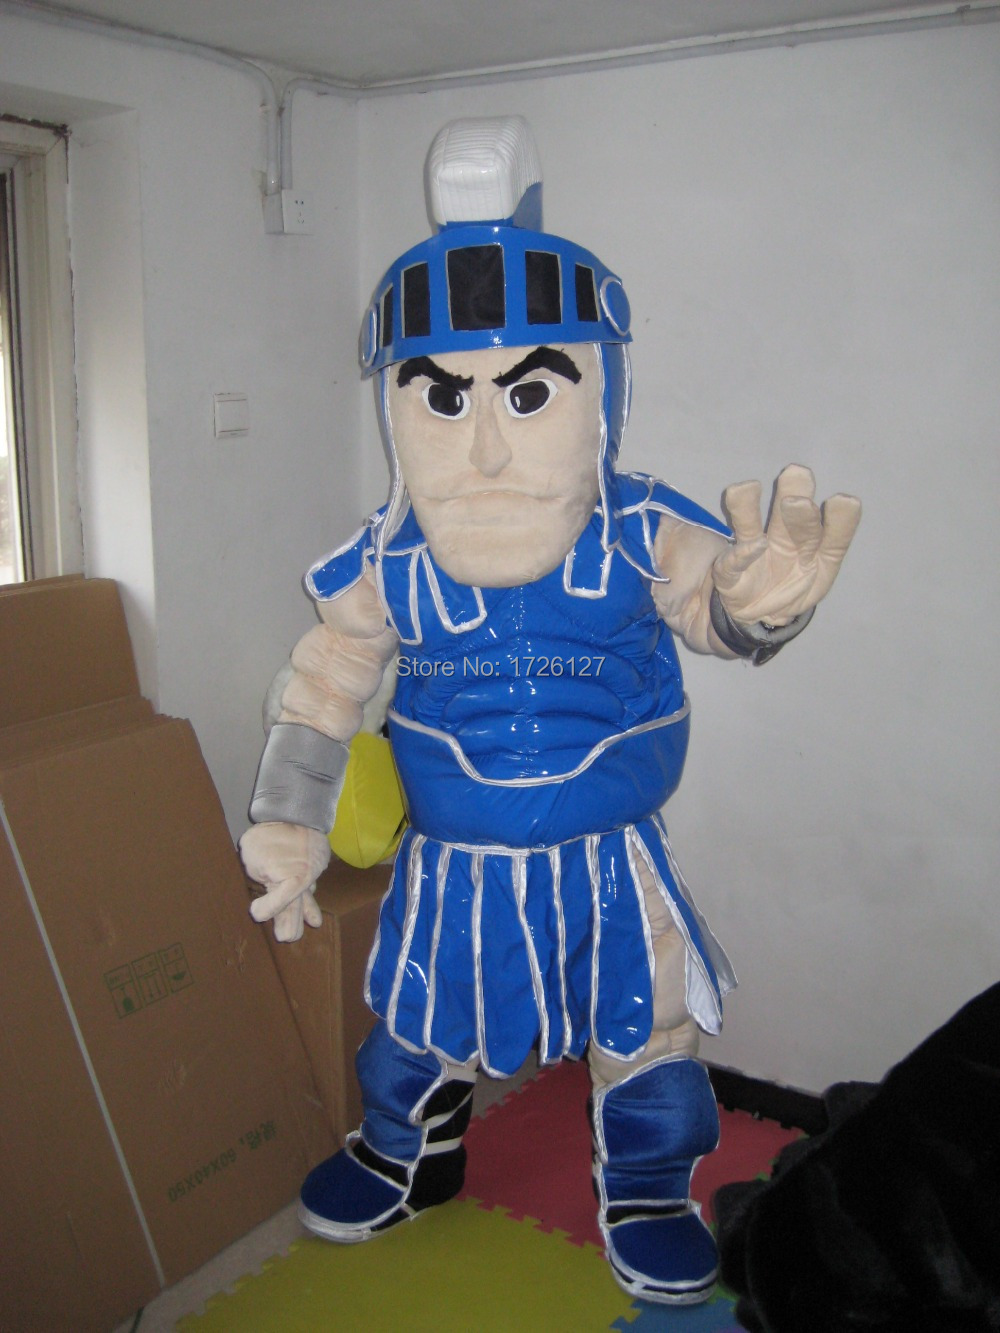 mascot spartan knight mascot trojan costume custom fancy costume cosplay character mascotte carnival costume-in Mascot from Novelty u0026 Special Use on ...  sc 1 st  AliExpress.com & mascot spartan knight mascot trojan costume custom fancy costume ...